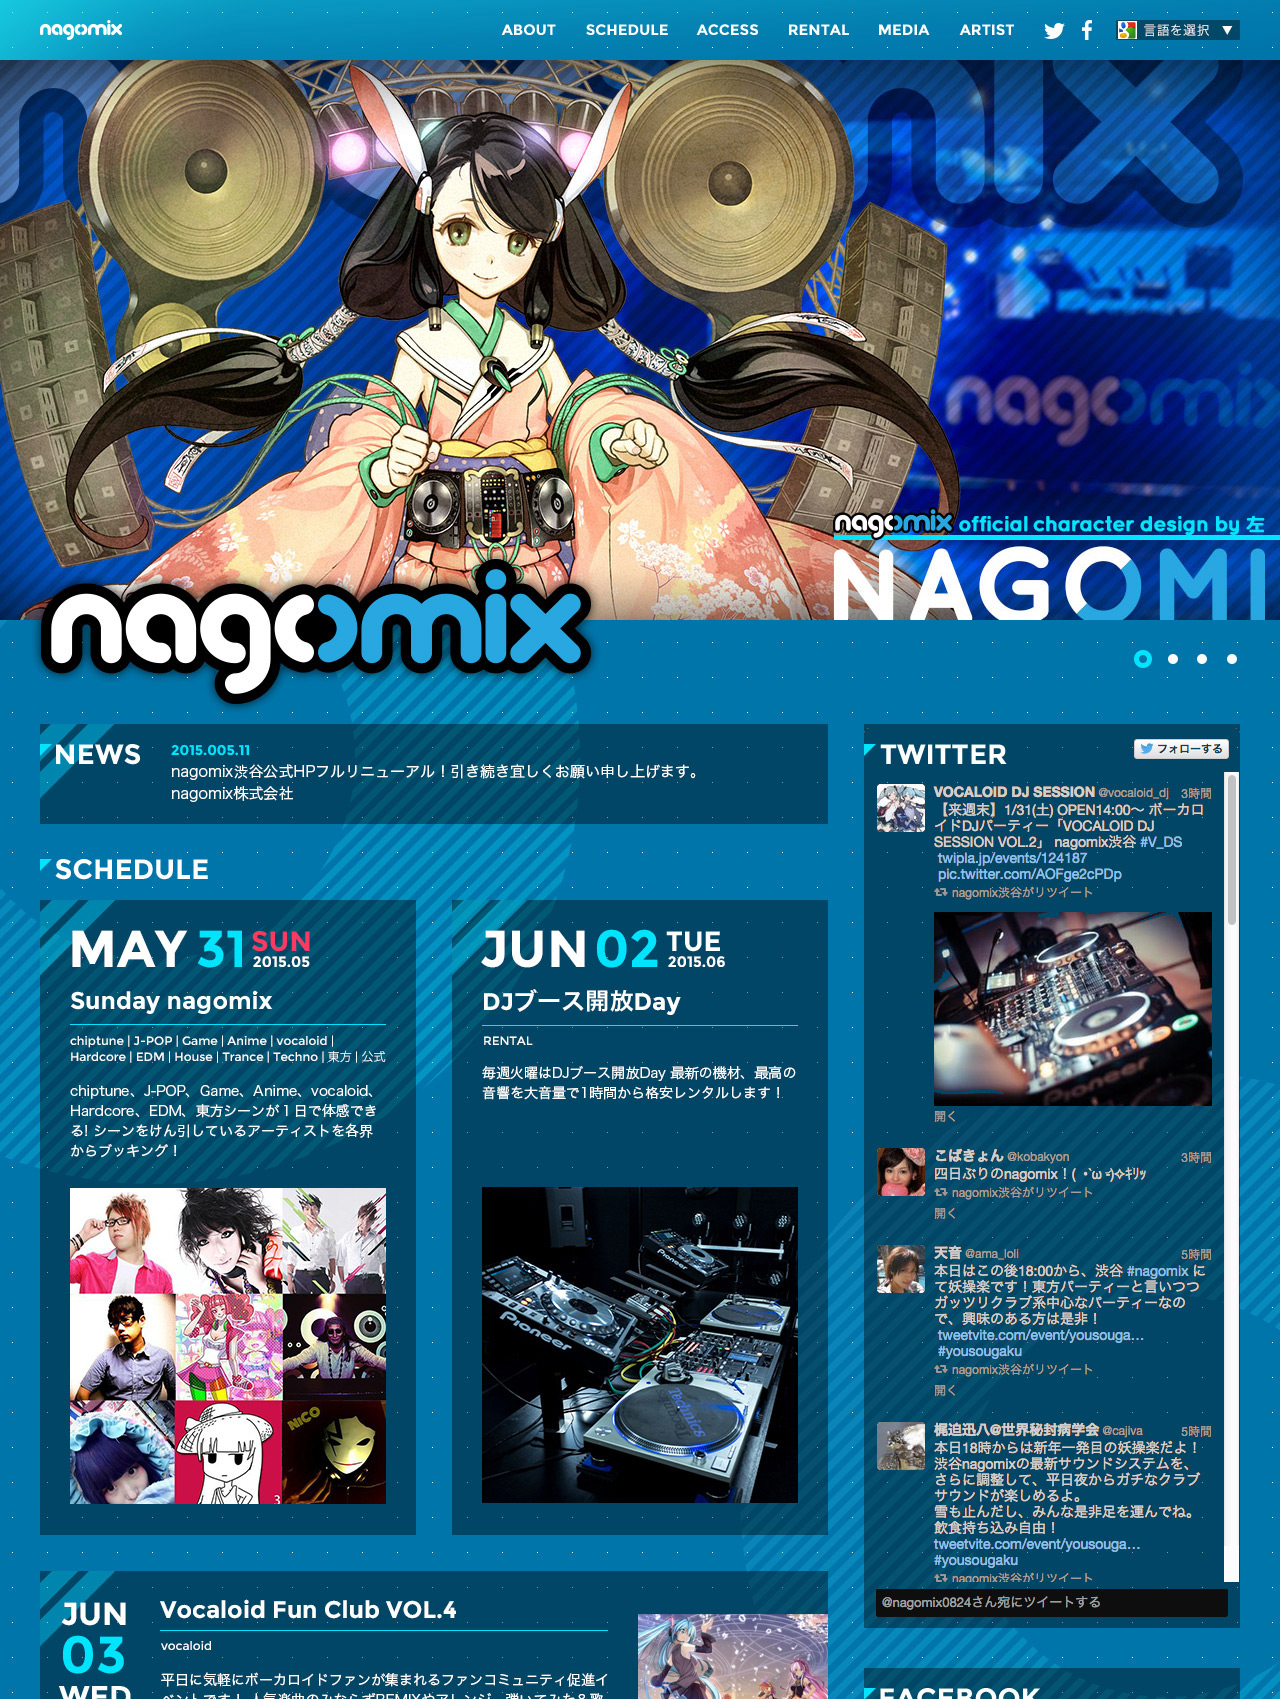 nagomix website